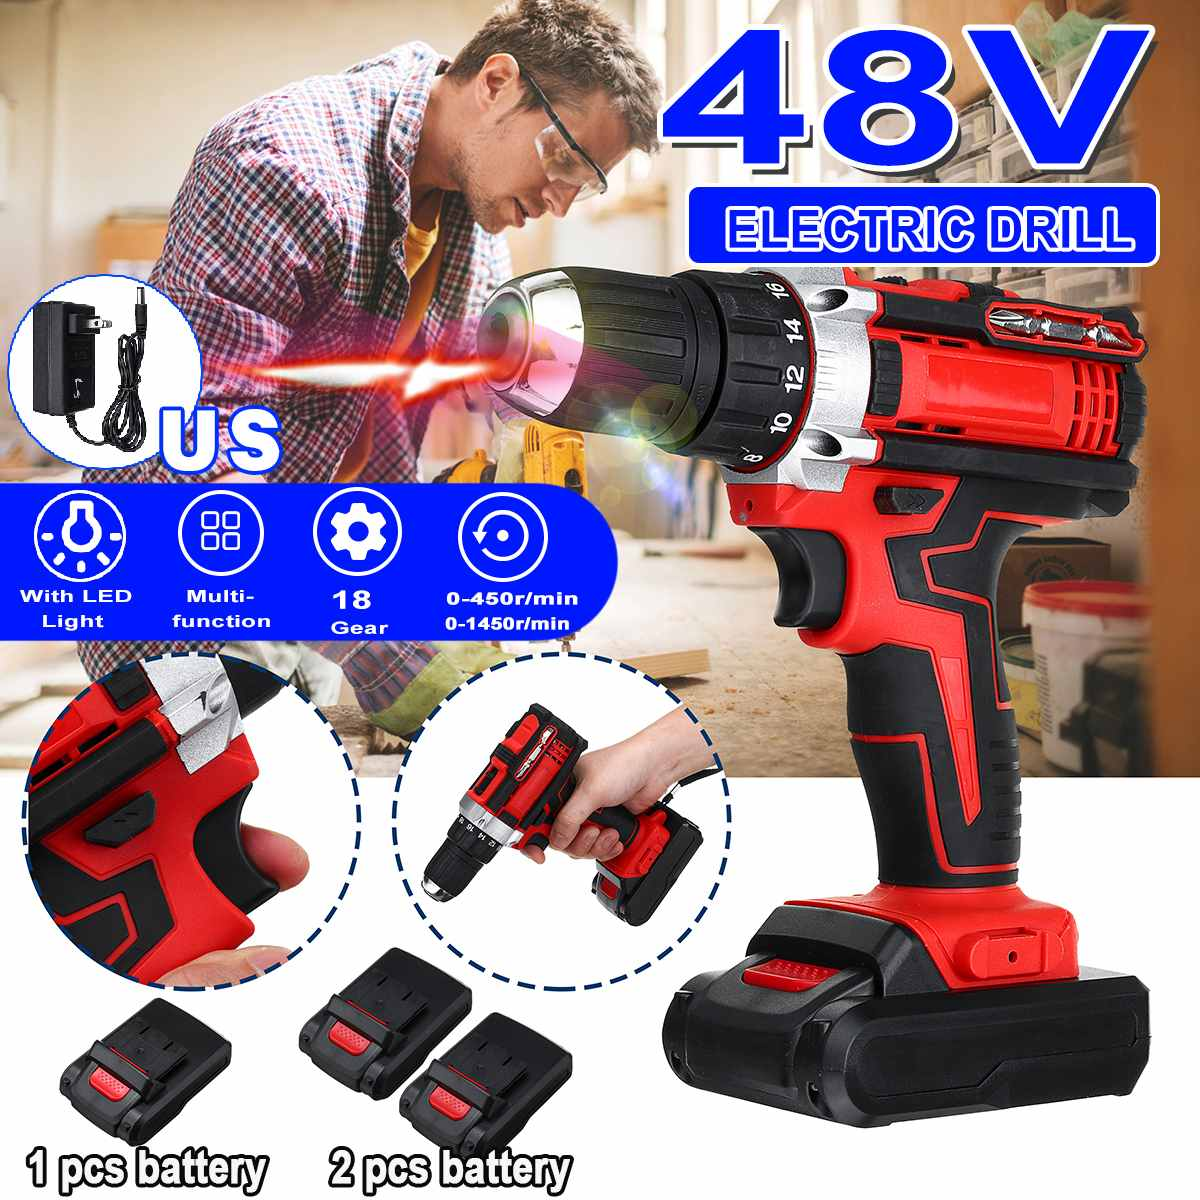 3 In 1 Cordless Electric Drill Screwdriver 48V 18 Gear Torque 2 Speed Mini Wireless Power Driver With 2 Rechargeable Battery